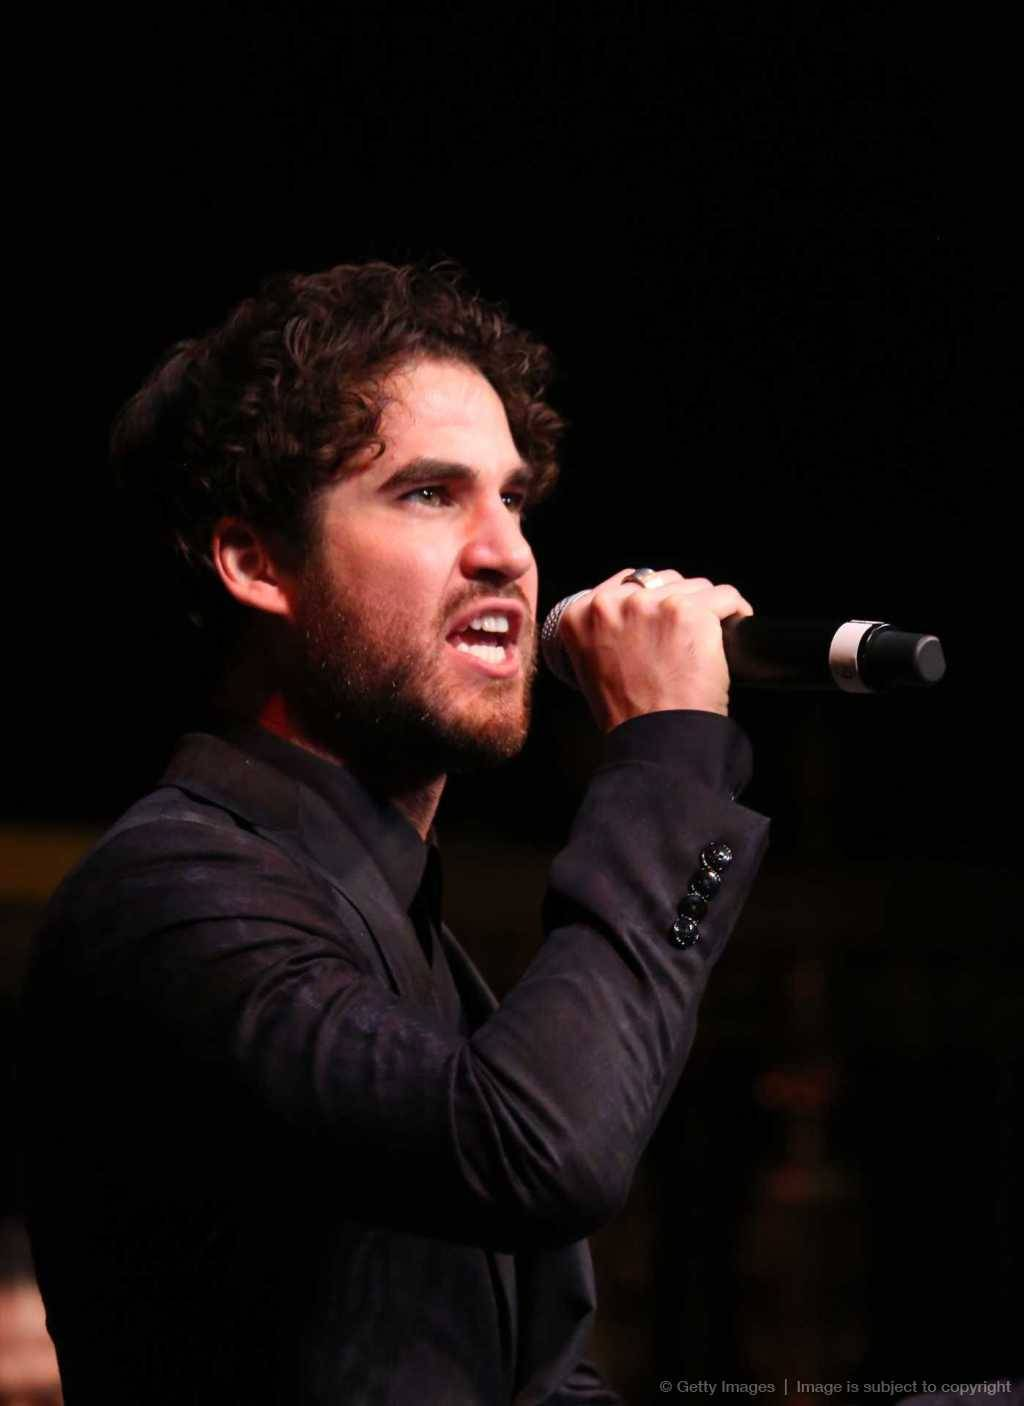 concert - Some of my favorite past photos/gifs of Darren Tumblr_nww33vivhF1r4gxc3o7_1280